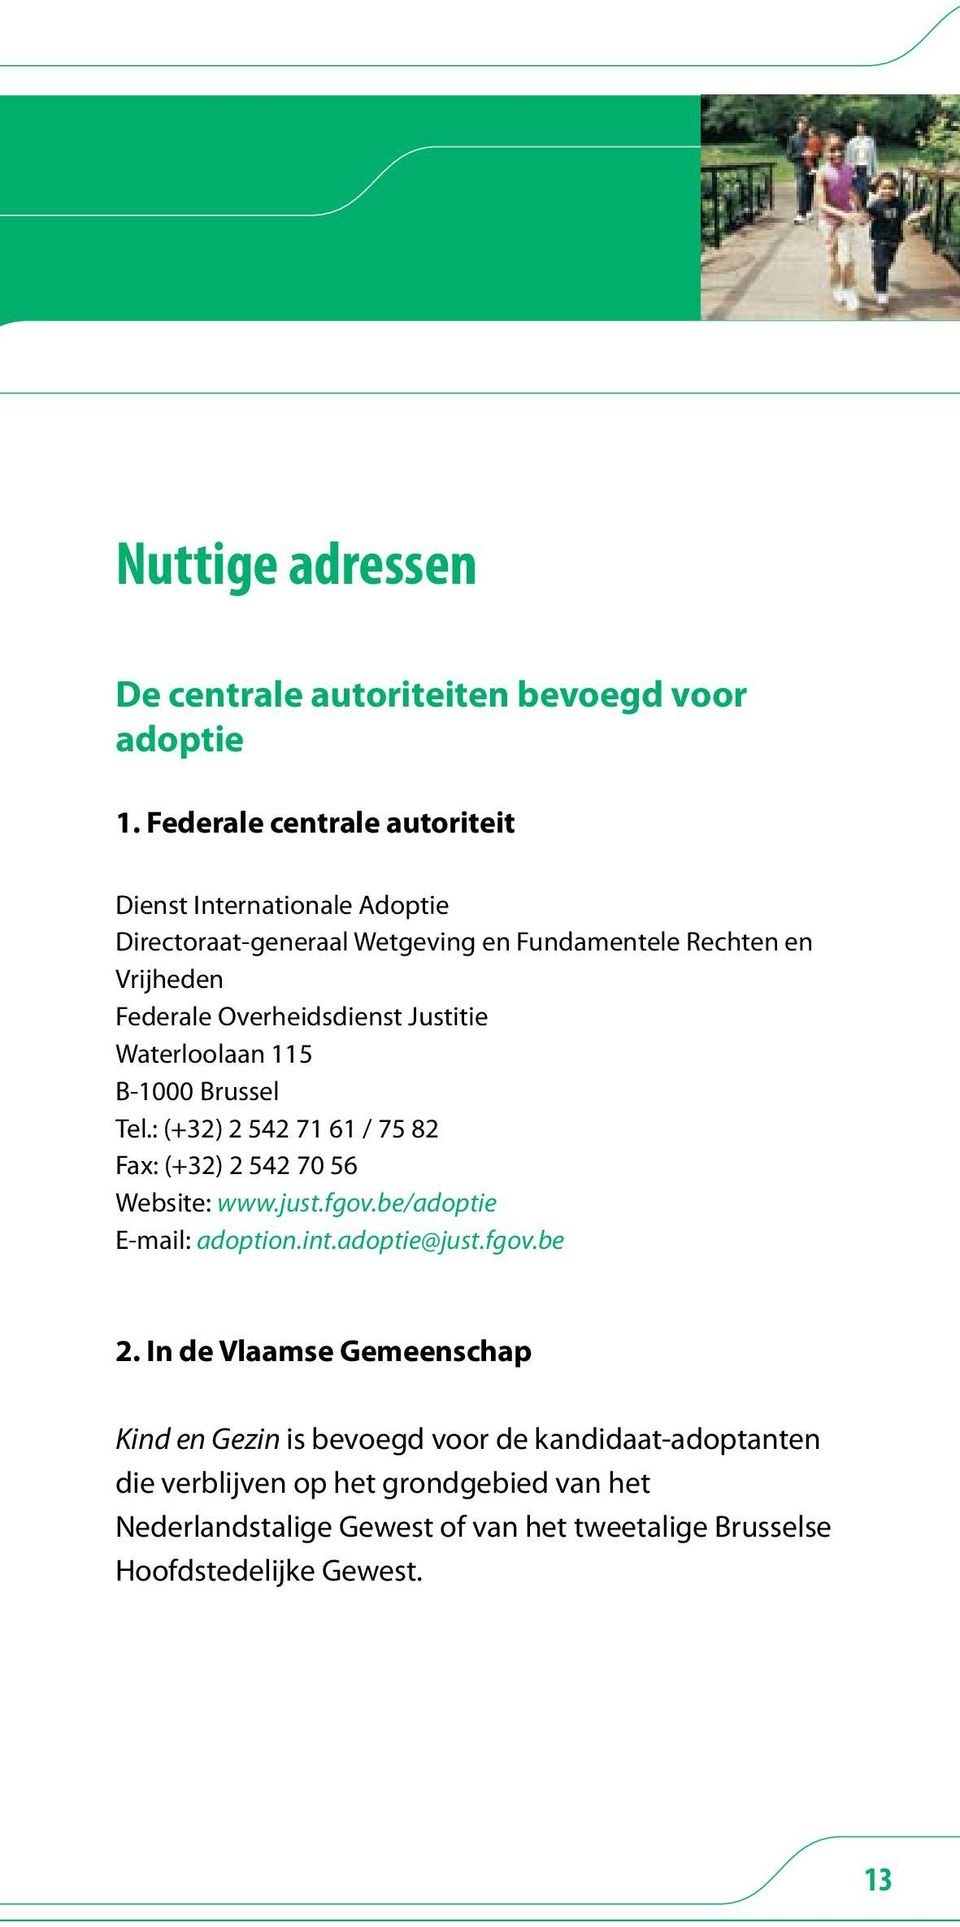 Overheidsdienst Justitie Waterloolaan 115 B-1000 Brussel Tel.: (+32) 2 542 71 61 / 75 82 Fax: (+32) 2 542 70 56 Website: www.just.fgov.